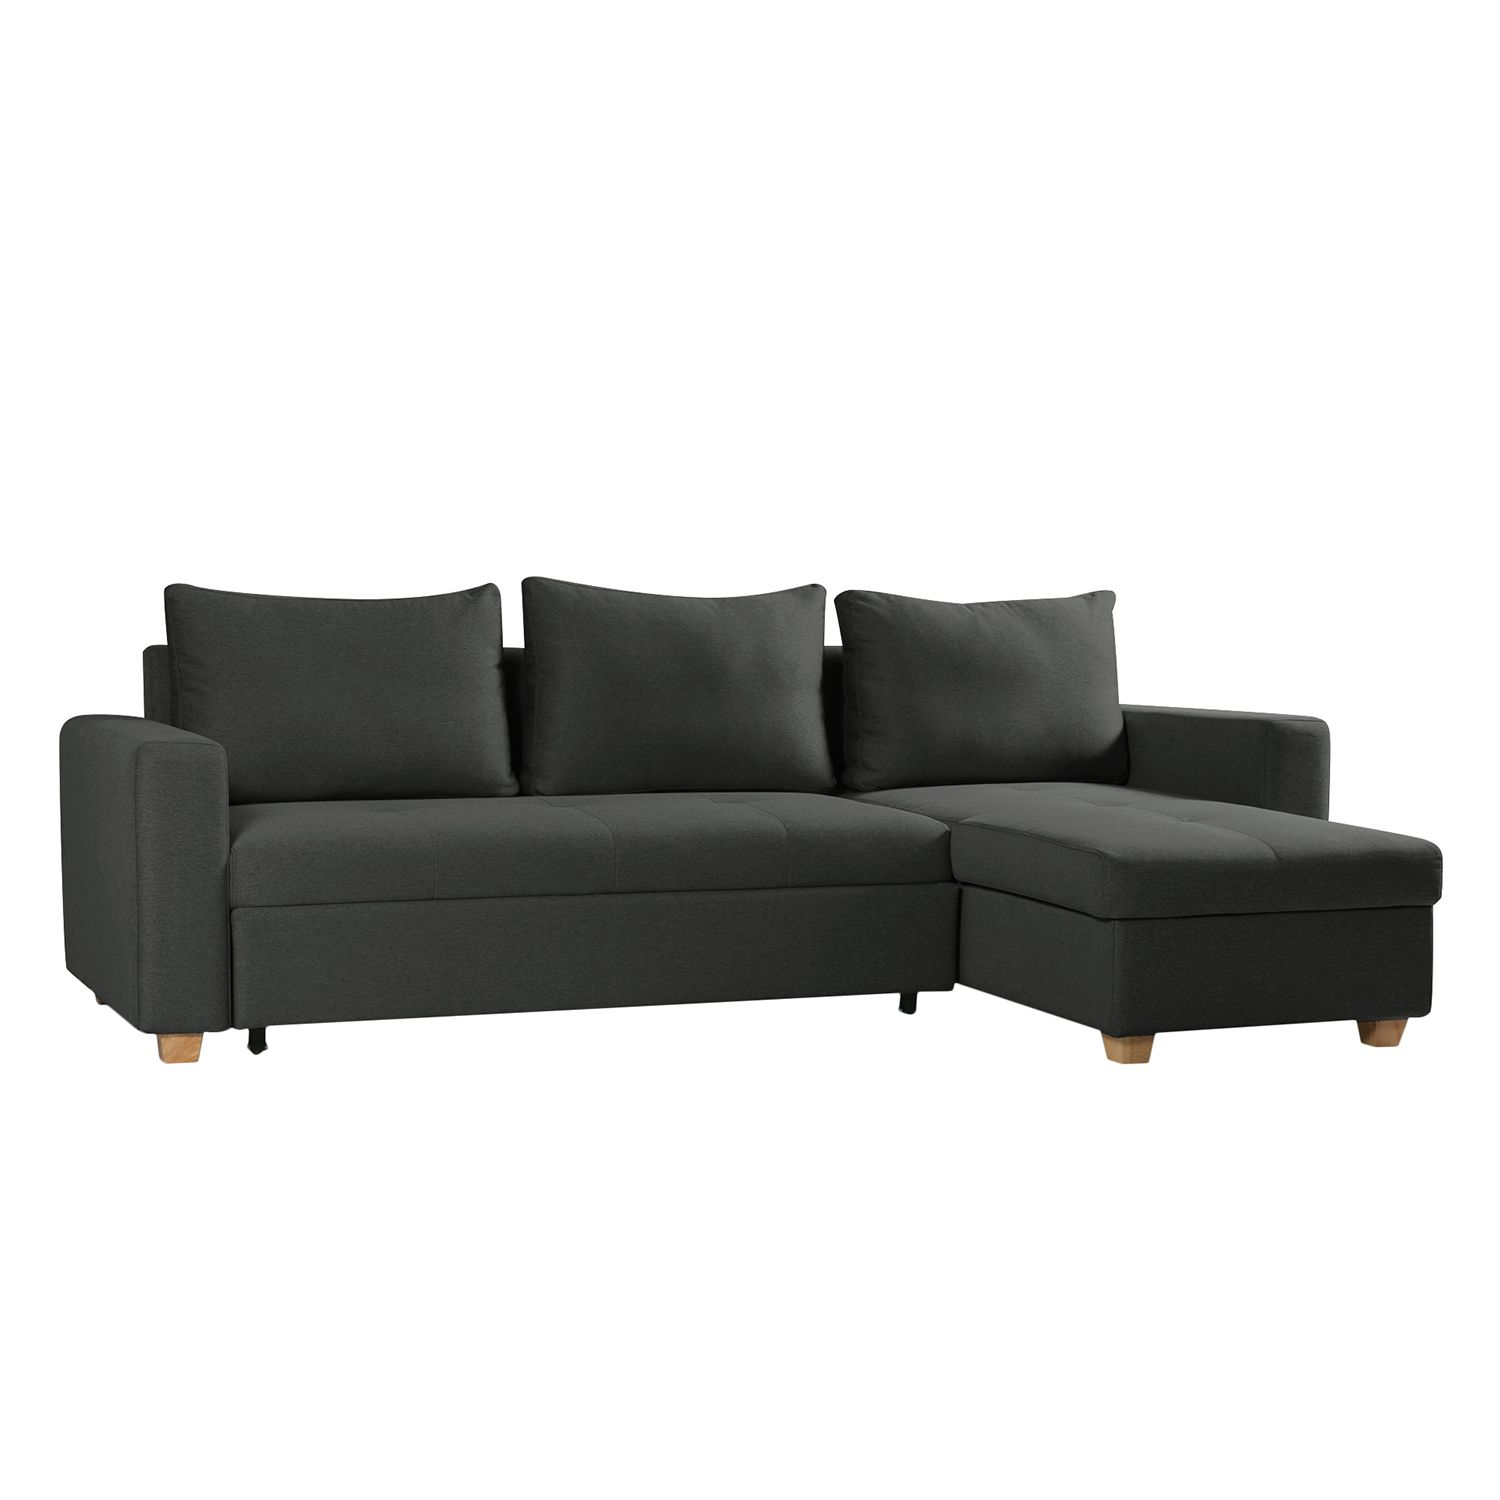 Smart Ecksofa Anna Ecksofa Schlaffunktion Landhausstil Mtec Metall